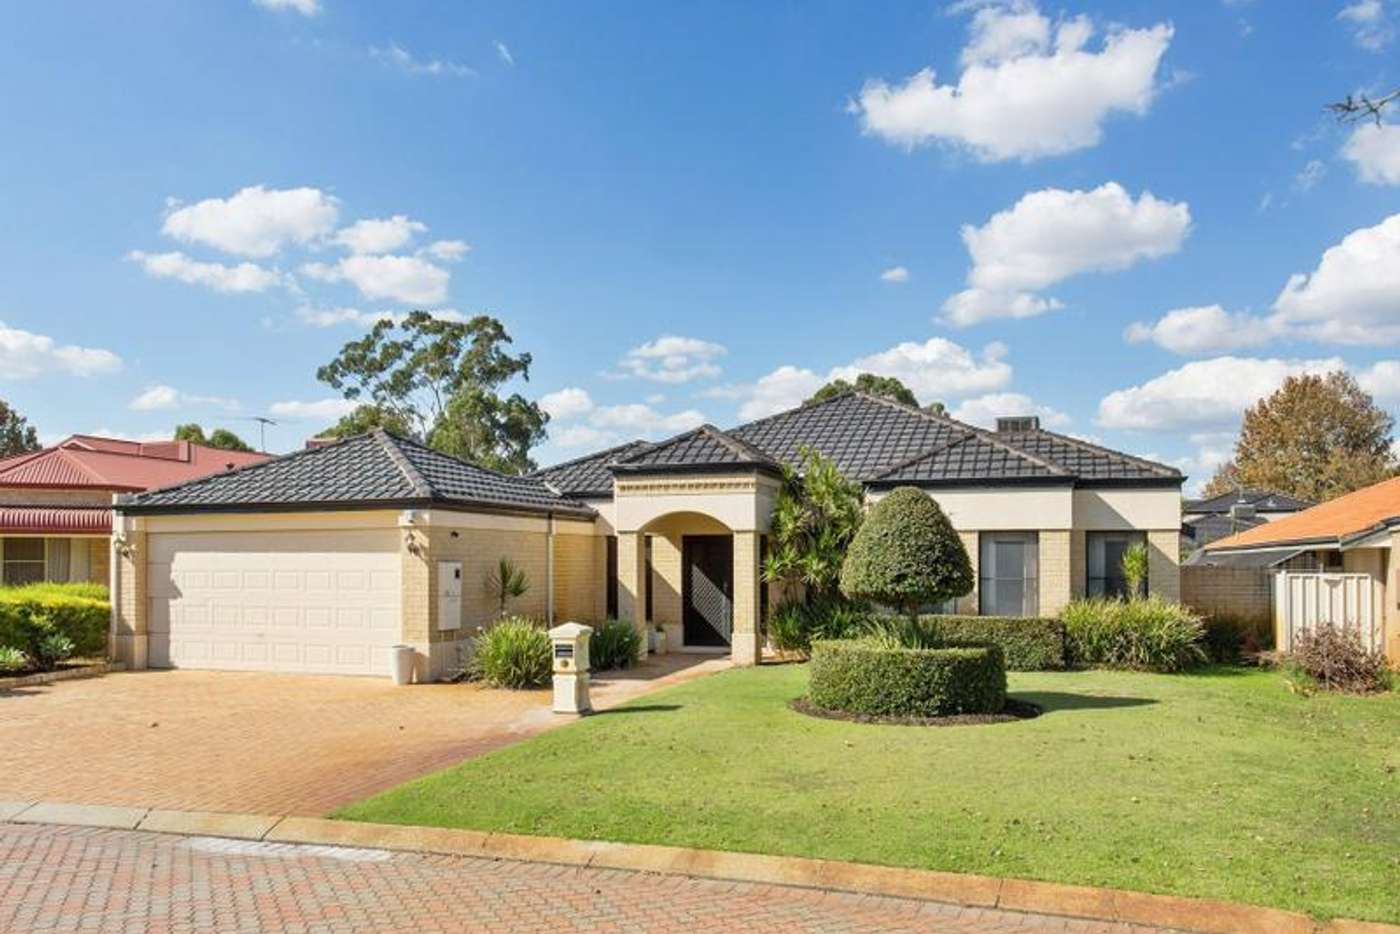 Main view of Homely house listing, 10 The Pines Grove, Jandakot WA 6164